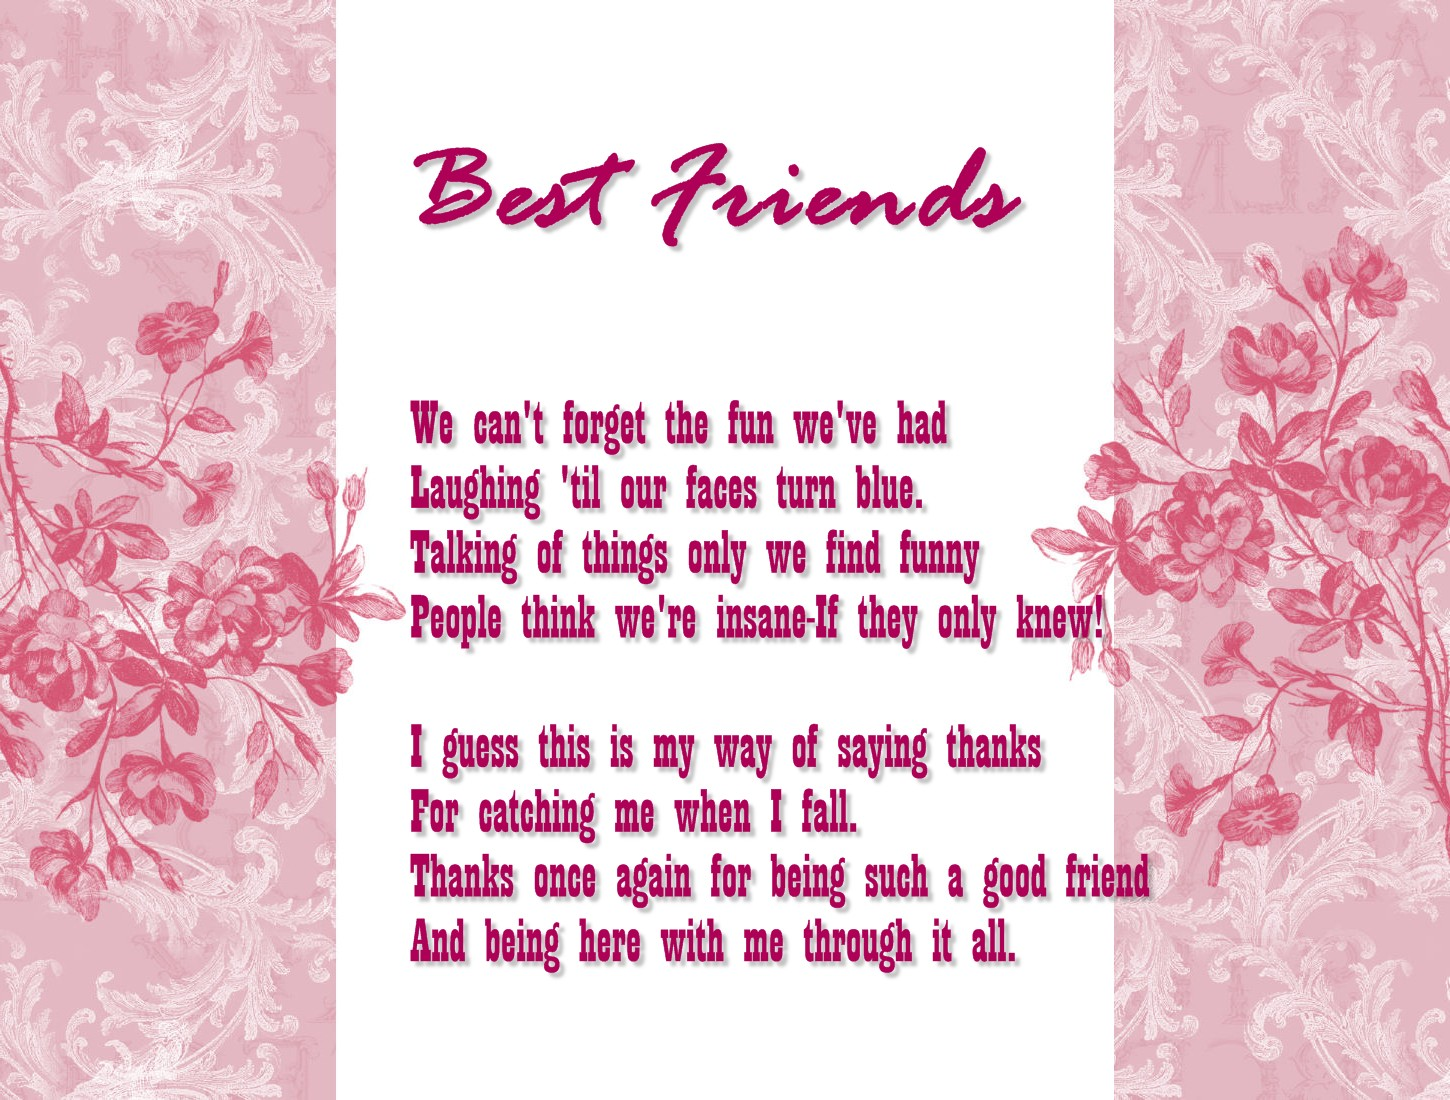 Free Download Quotes Quotations Tagged Beautiful Friendship Quotes Quotations Quotes 1450x1100 For Your Desktop Mobile Tablet Explore 48 Best Friend Wallpapers Quotes Best Friends Wallpapers Friendship Quotes Wallpaper Hd